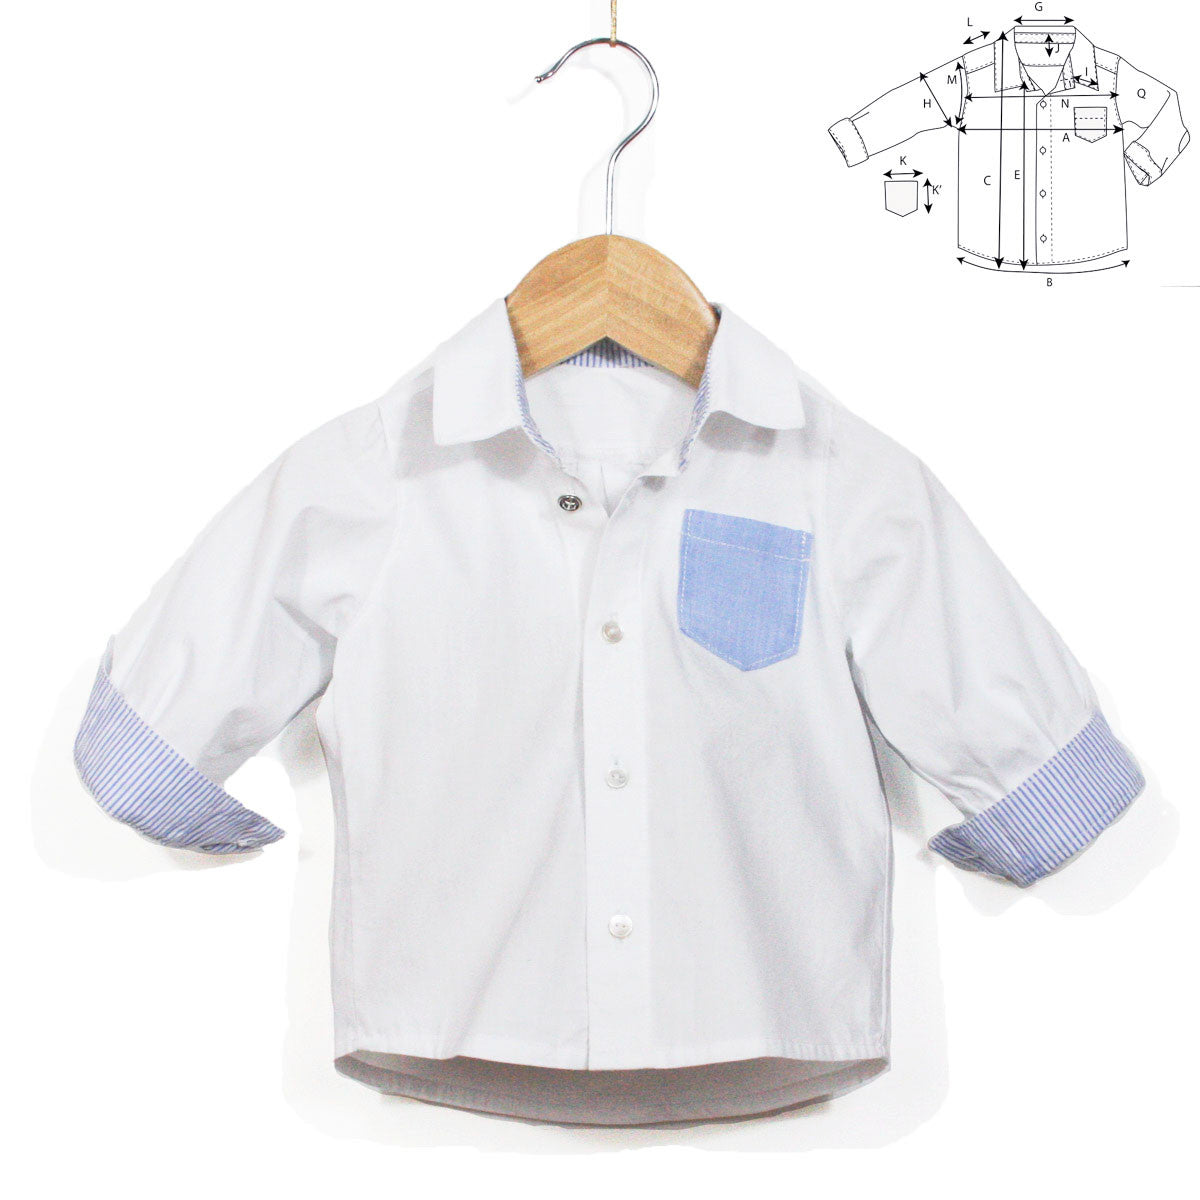 Coupe chemise homme pdf